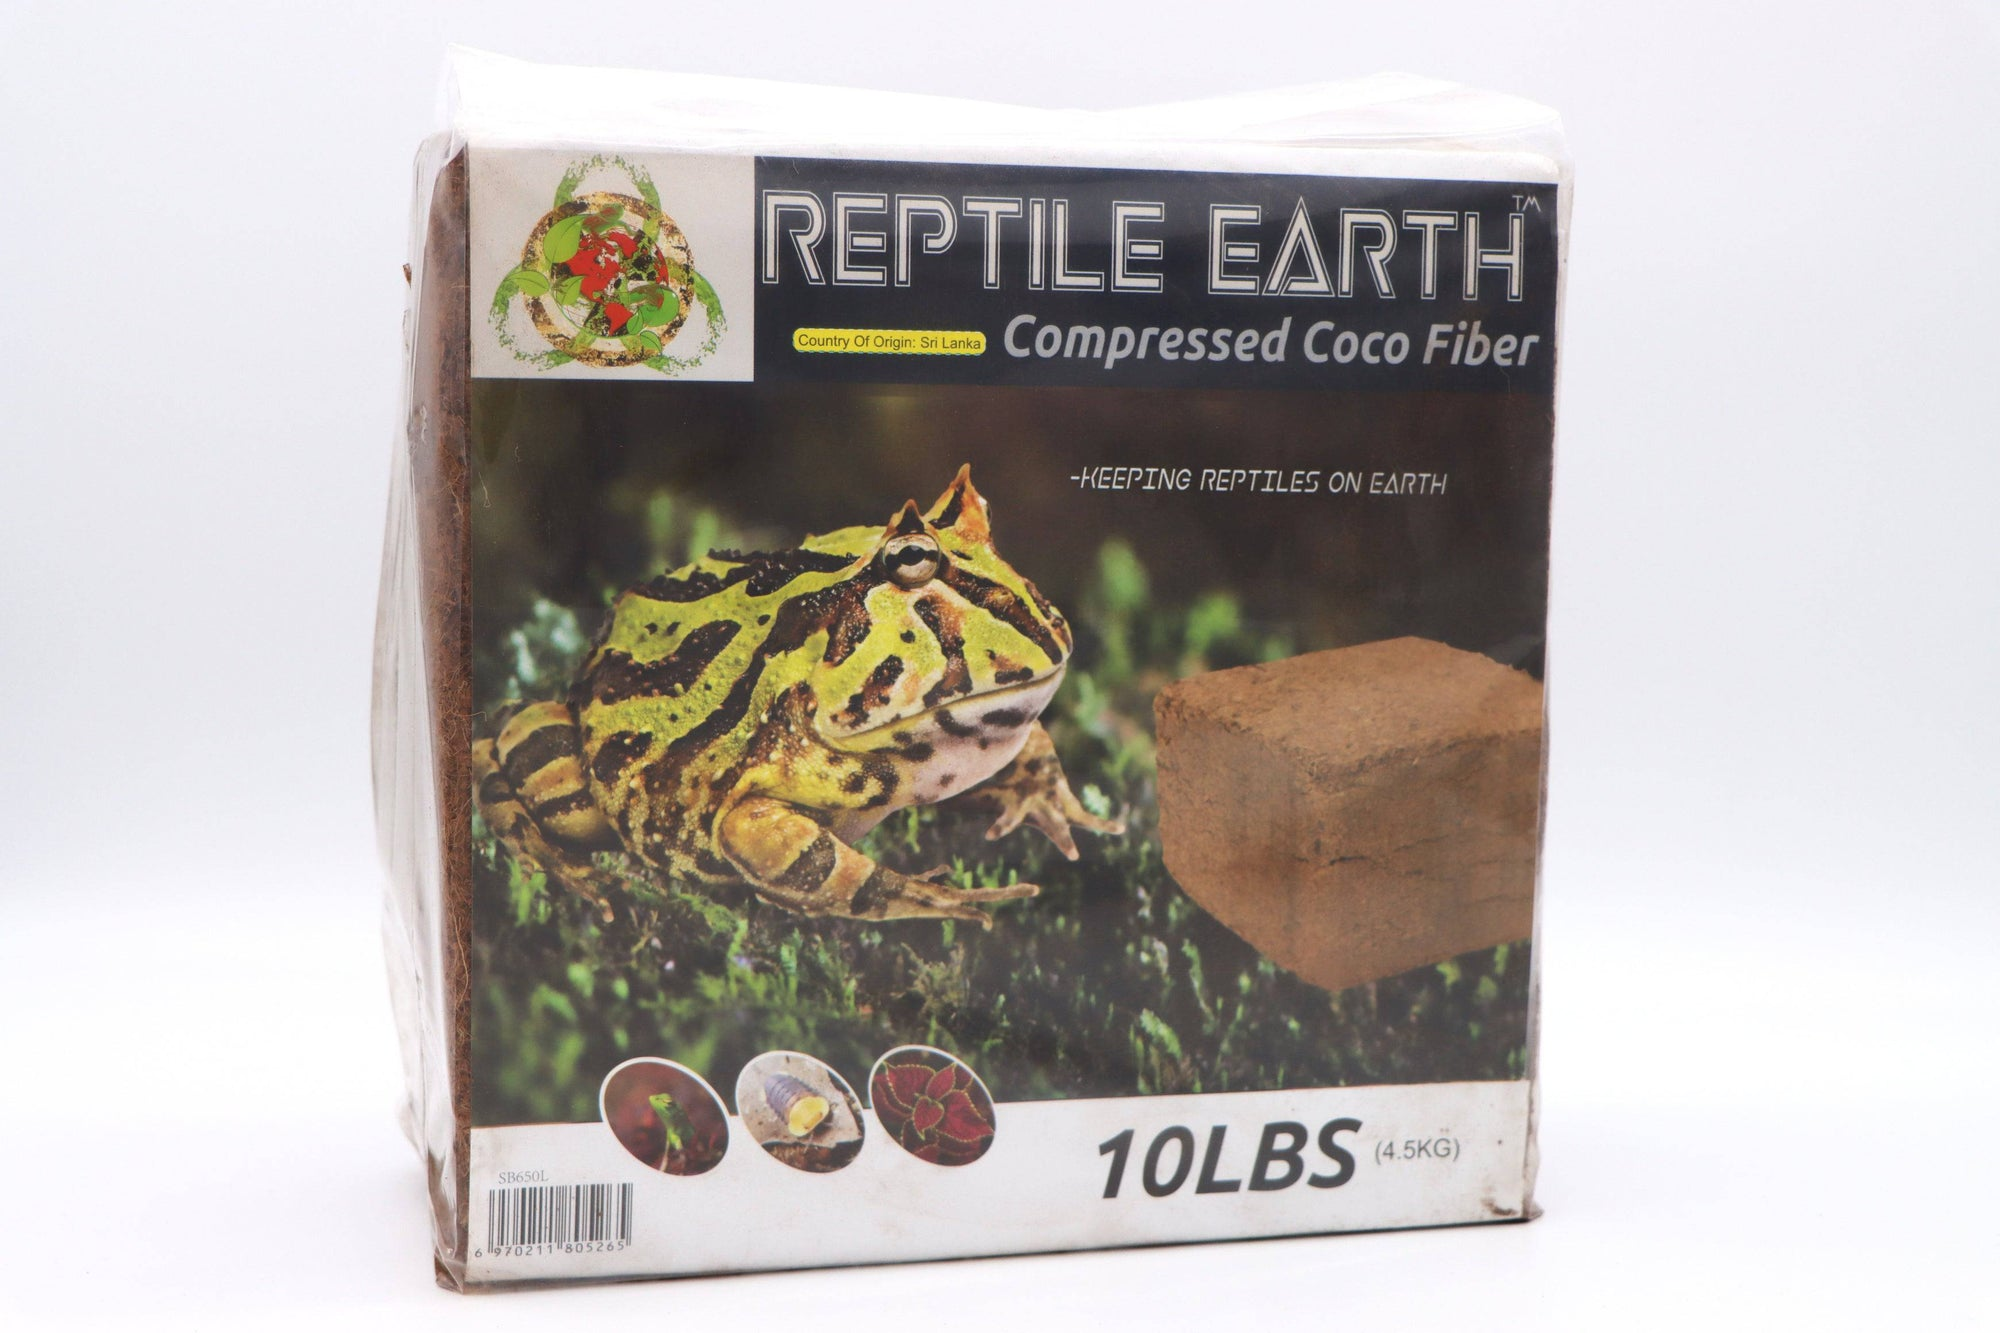 Reptile Earth - Coco Fiber Compressed 10lb Block